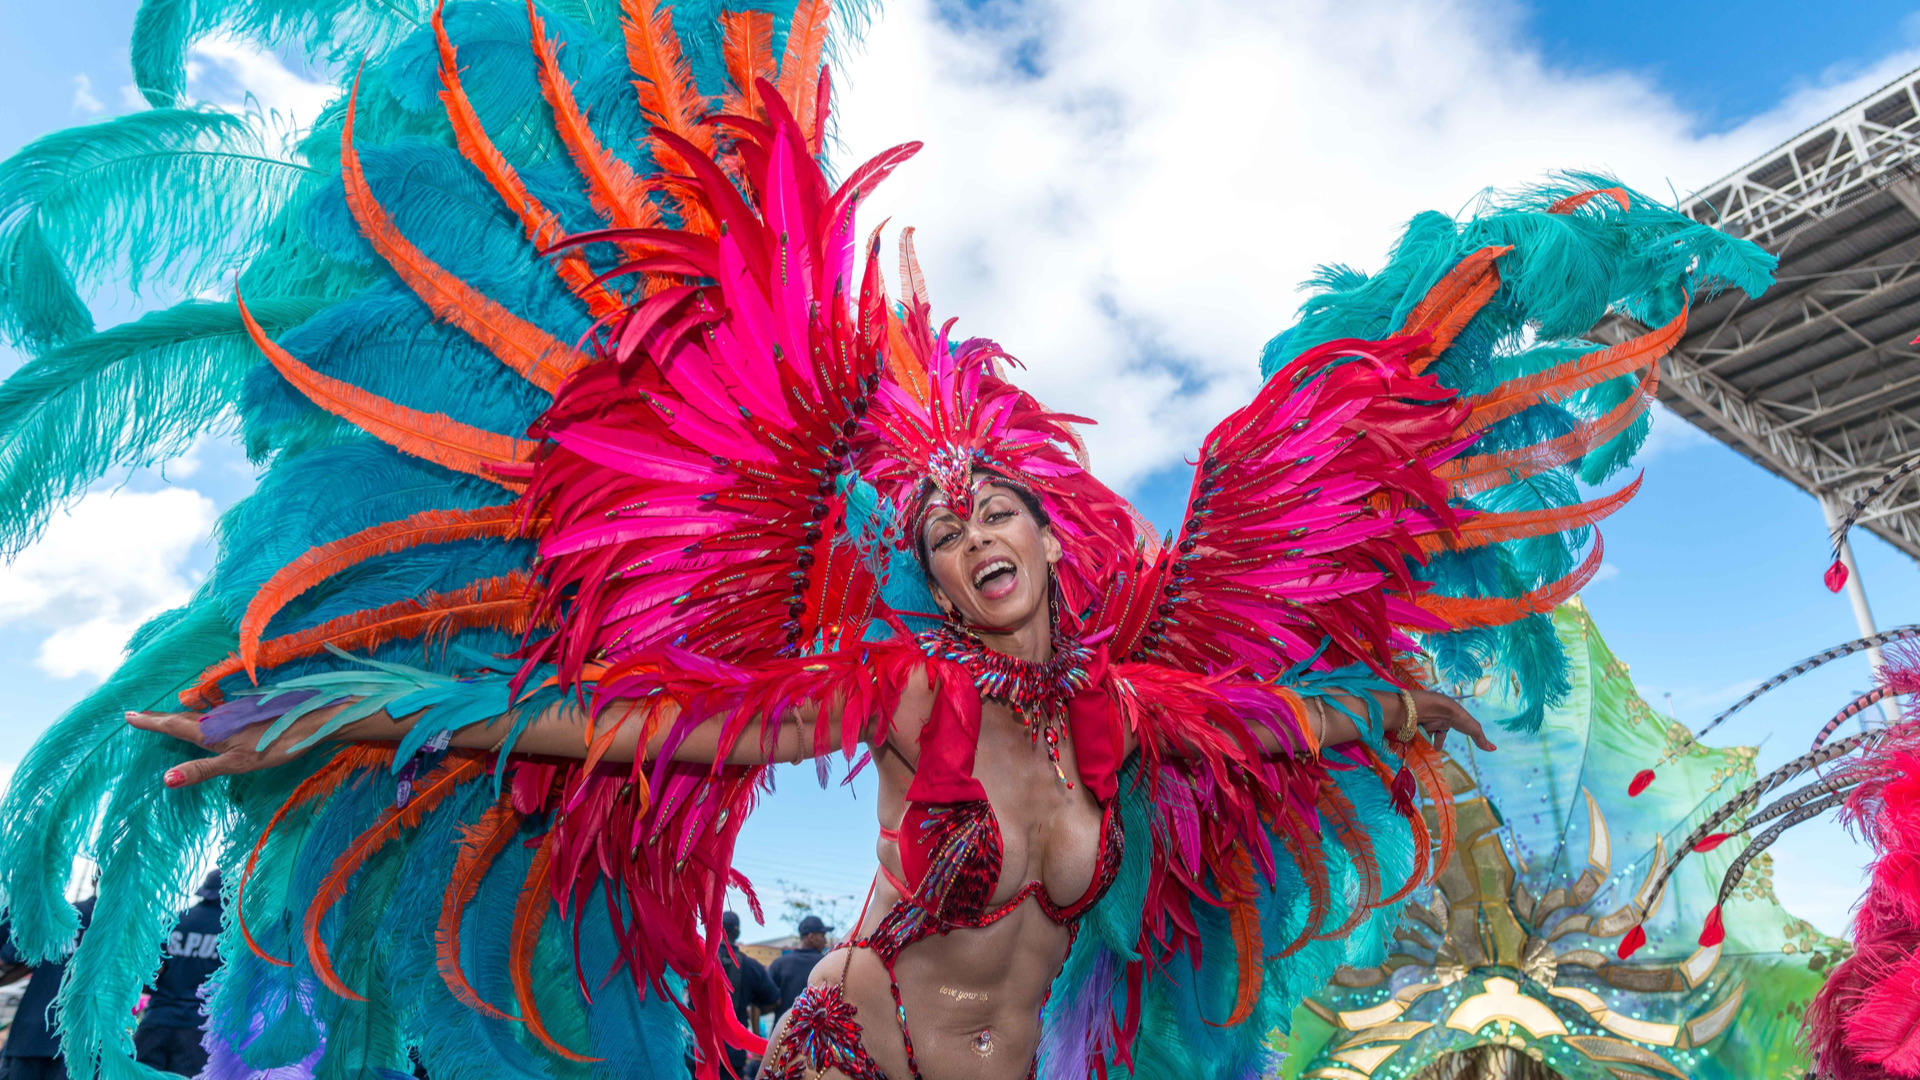 Female masquerader in front line Carnival costume